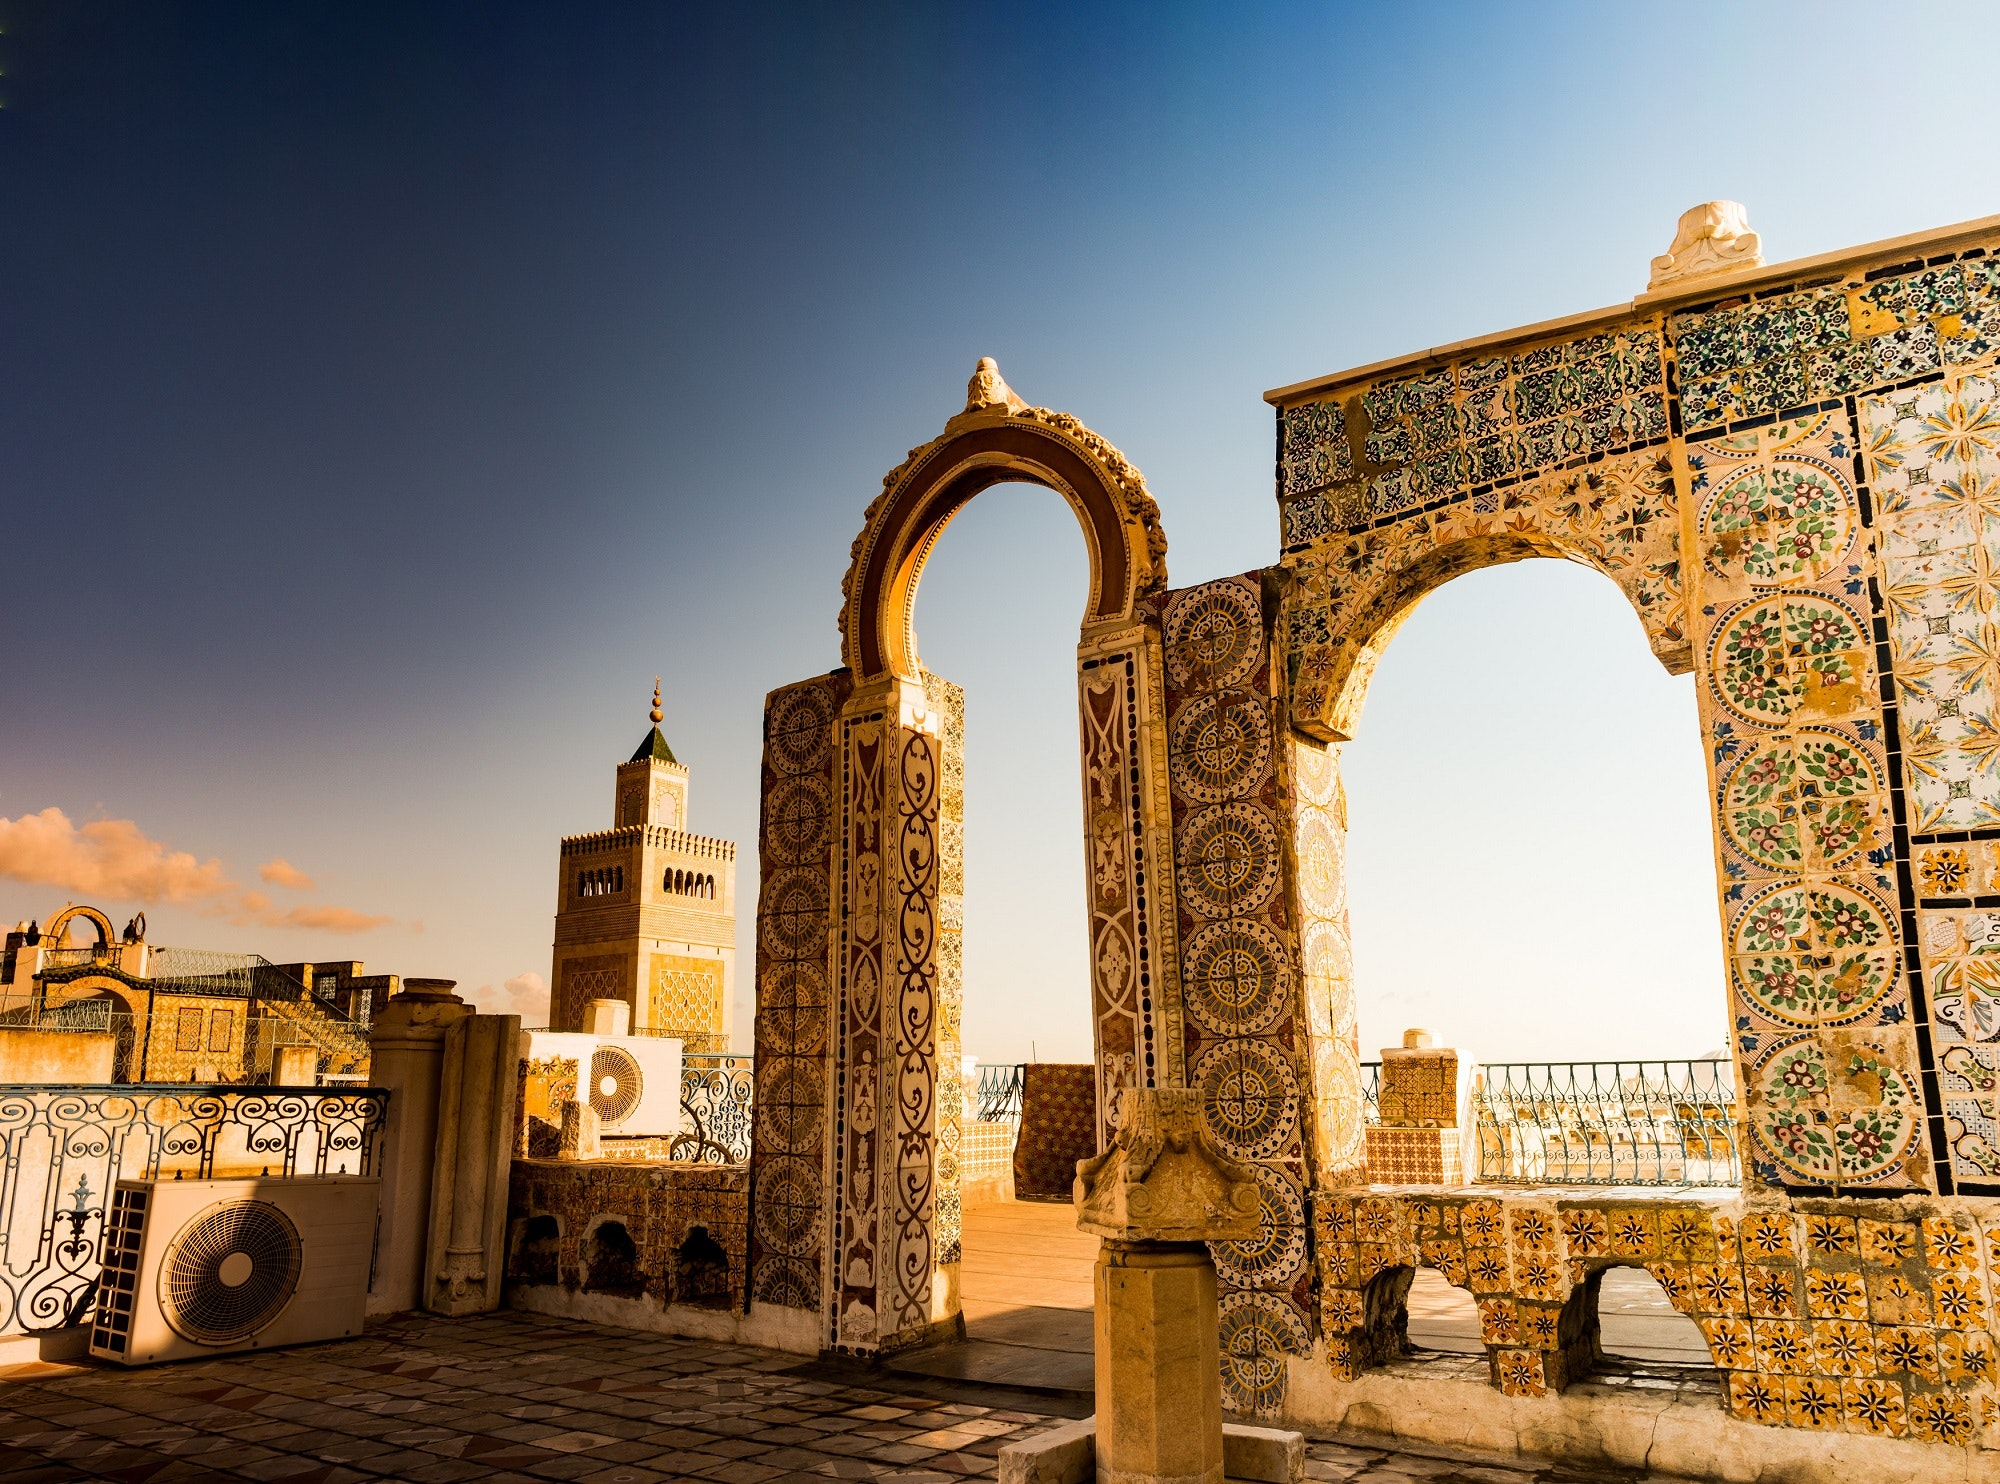 A medina rooftop view of the Zitouna Mosque in Tunis, Tunisia